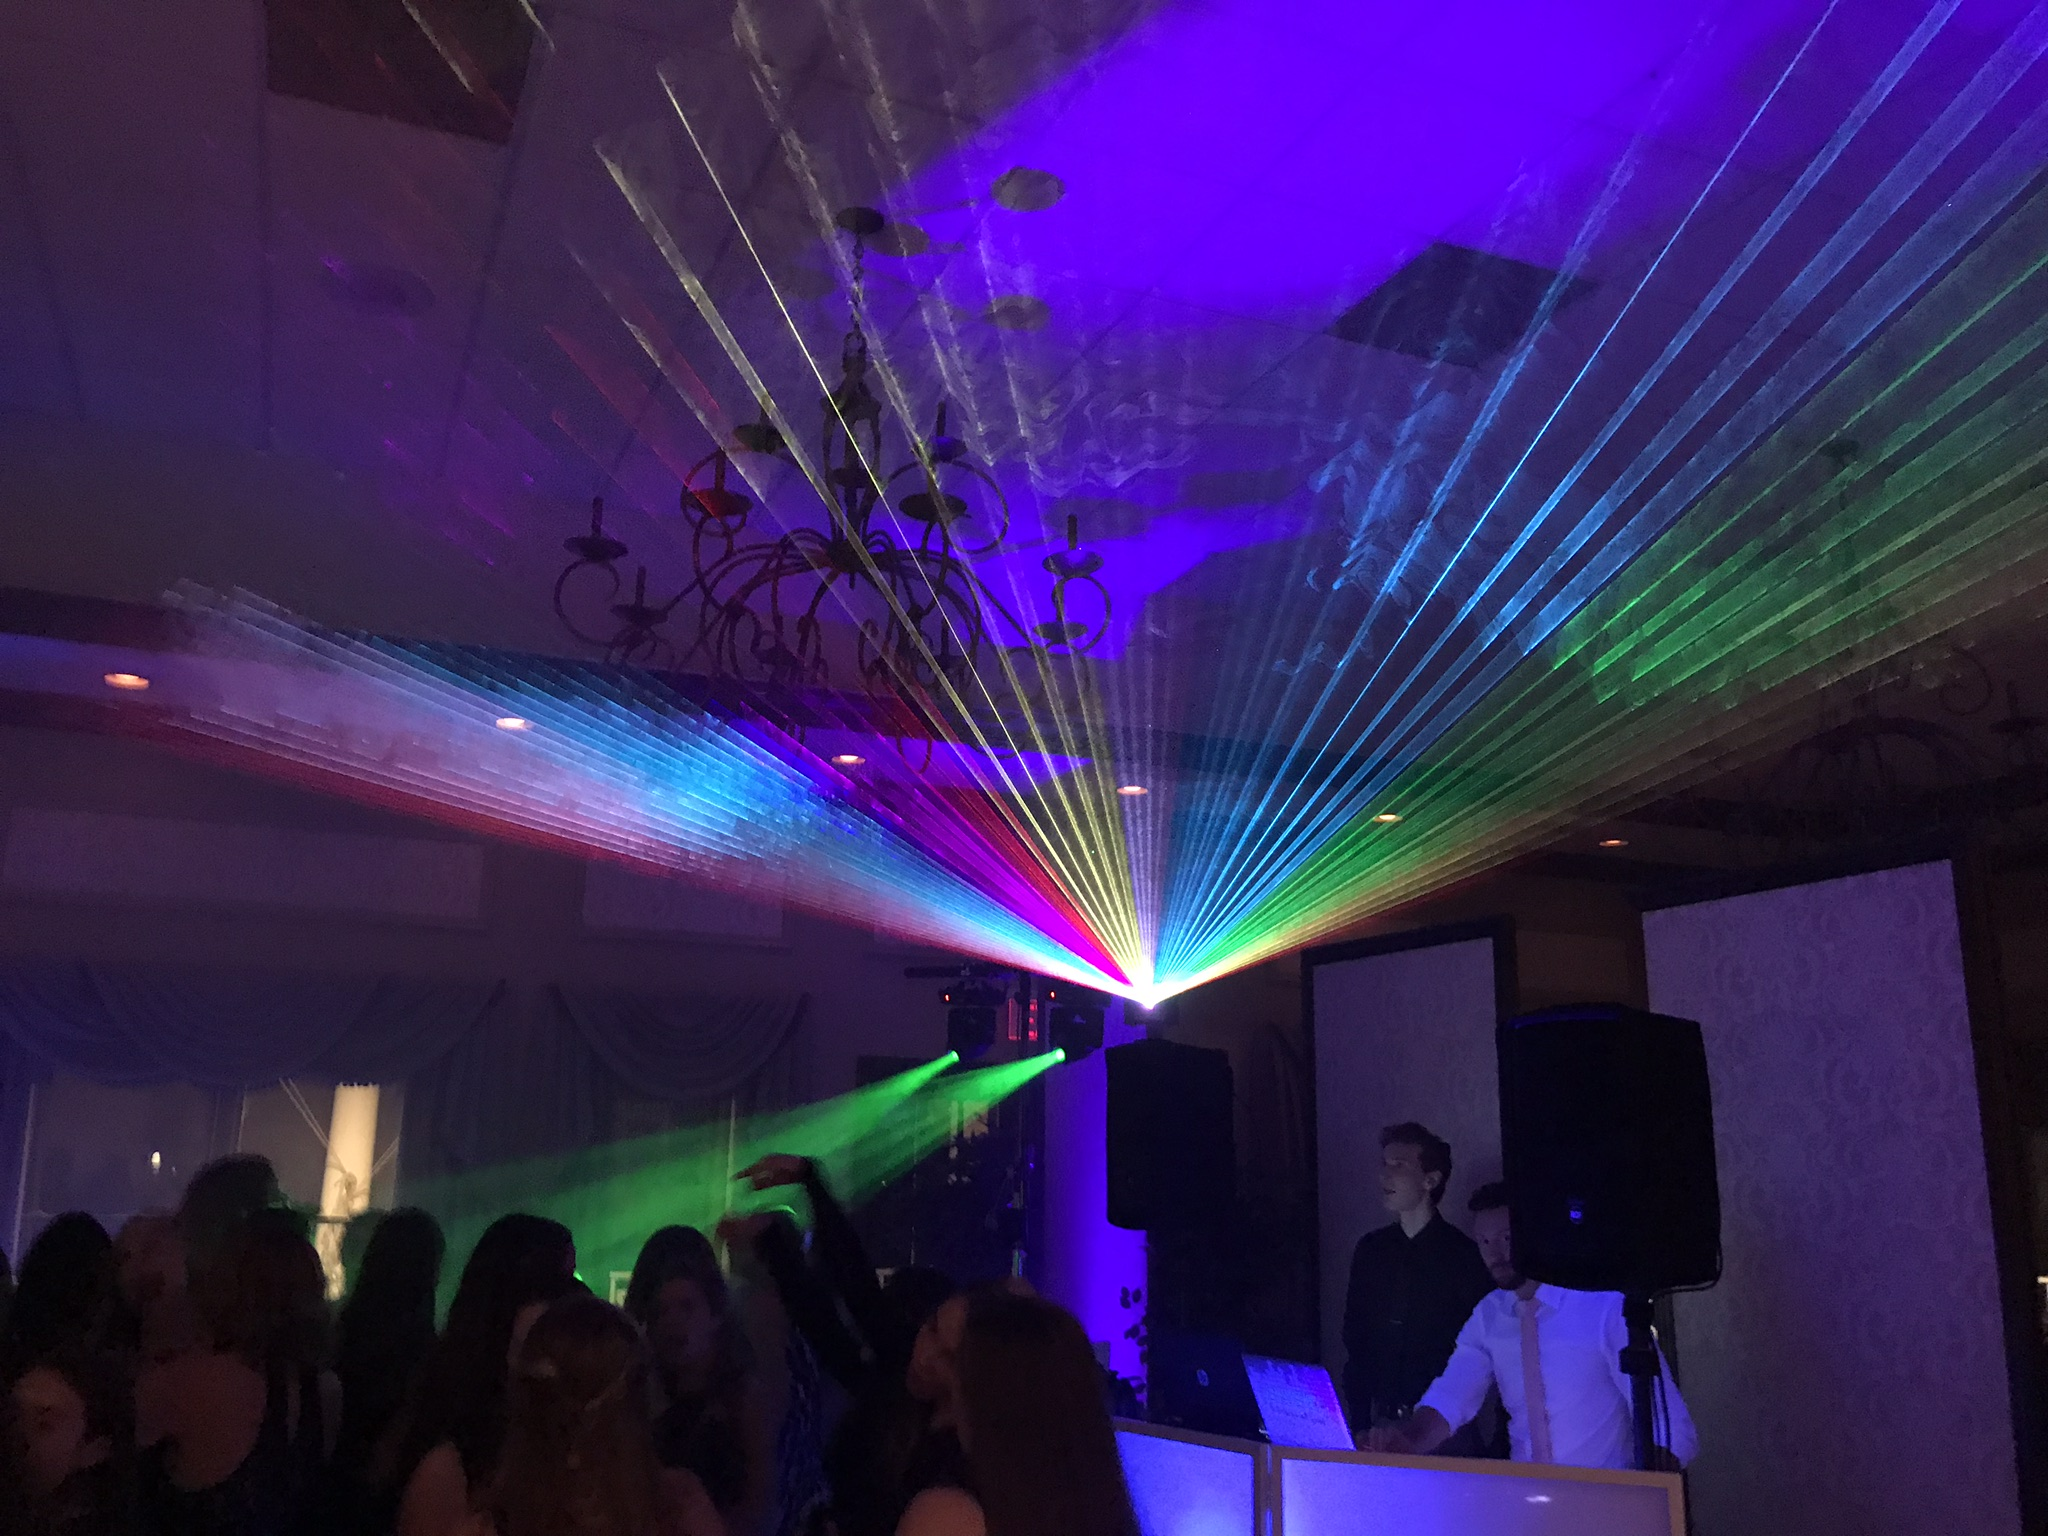 Laser Lightshow $295 - Add a Laser Lightshow. High Powered and an amazing addition to a Sweet 16